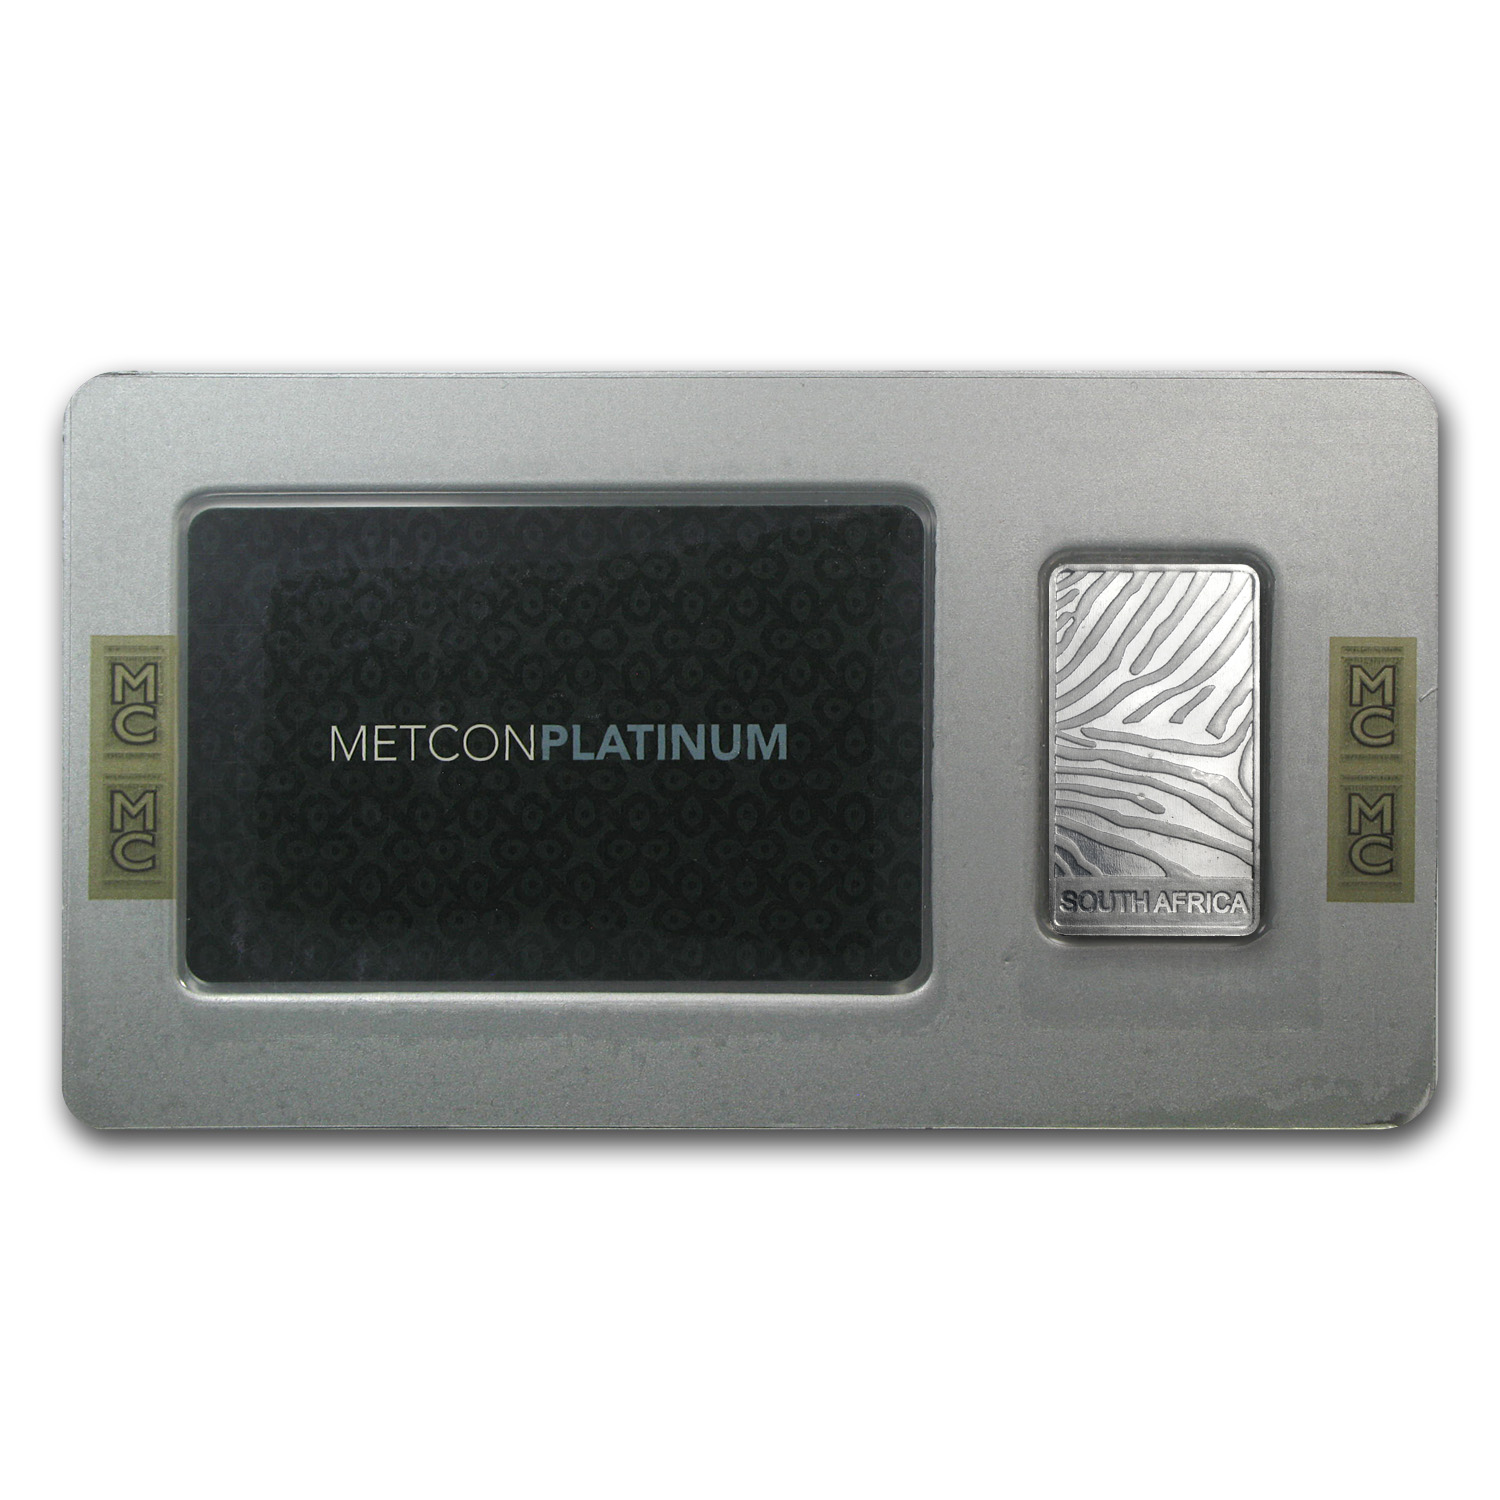 1 oz Platinum Bar - South African MC (.9995 Fine)